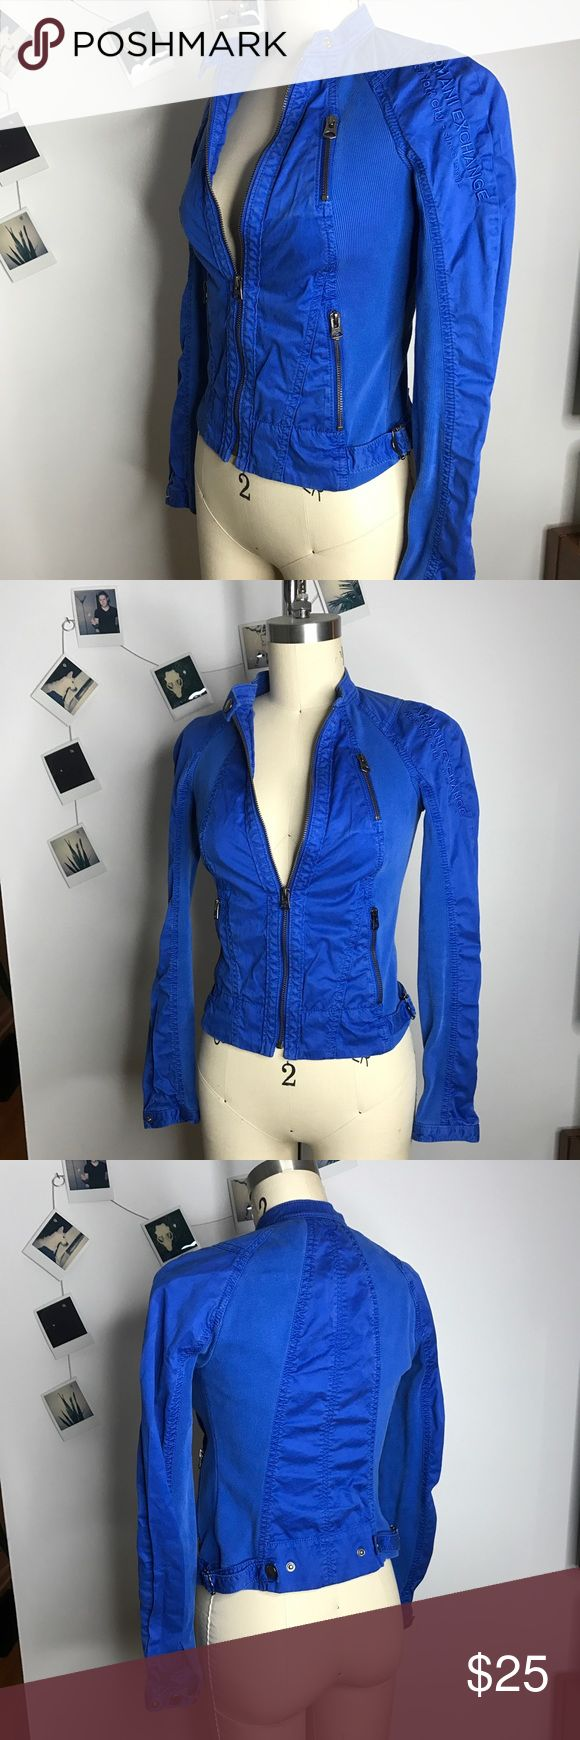 Electric Blue Armani Exchange Jacket Amazing accent piece for any wardrobe. This electric blue jacket has embroidered details, raglan type sleeves, and lots of zippers. It has elastic on sides and arms for an extra slim fit. Put it over a slip dress for an edge. Armani Exchange Jackets & Coats Utility Jackets